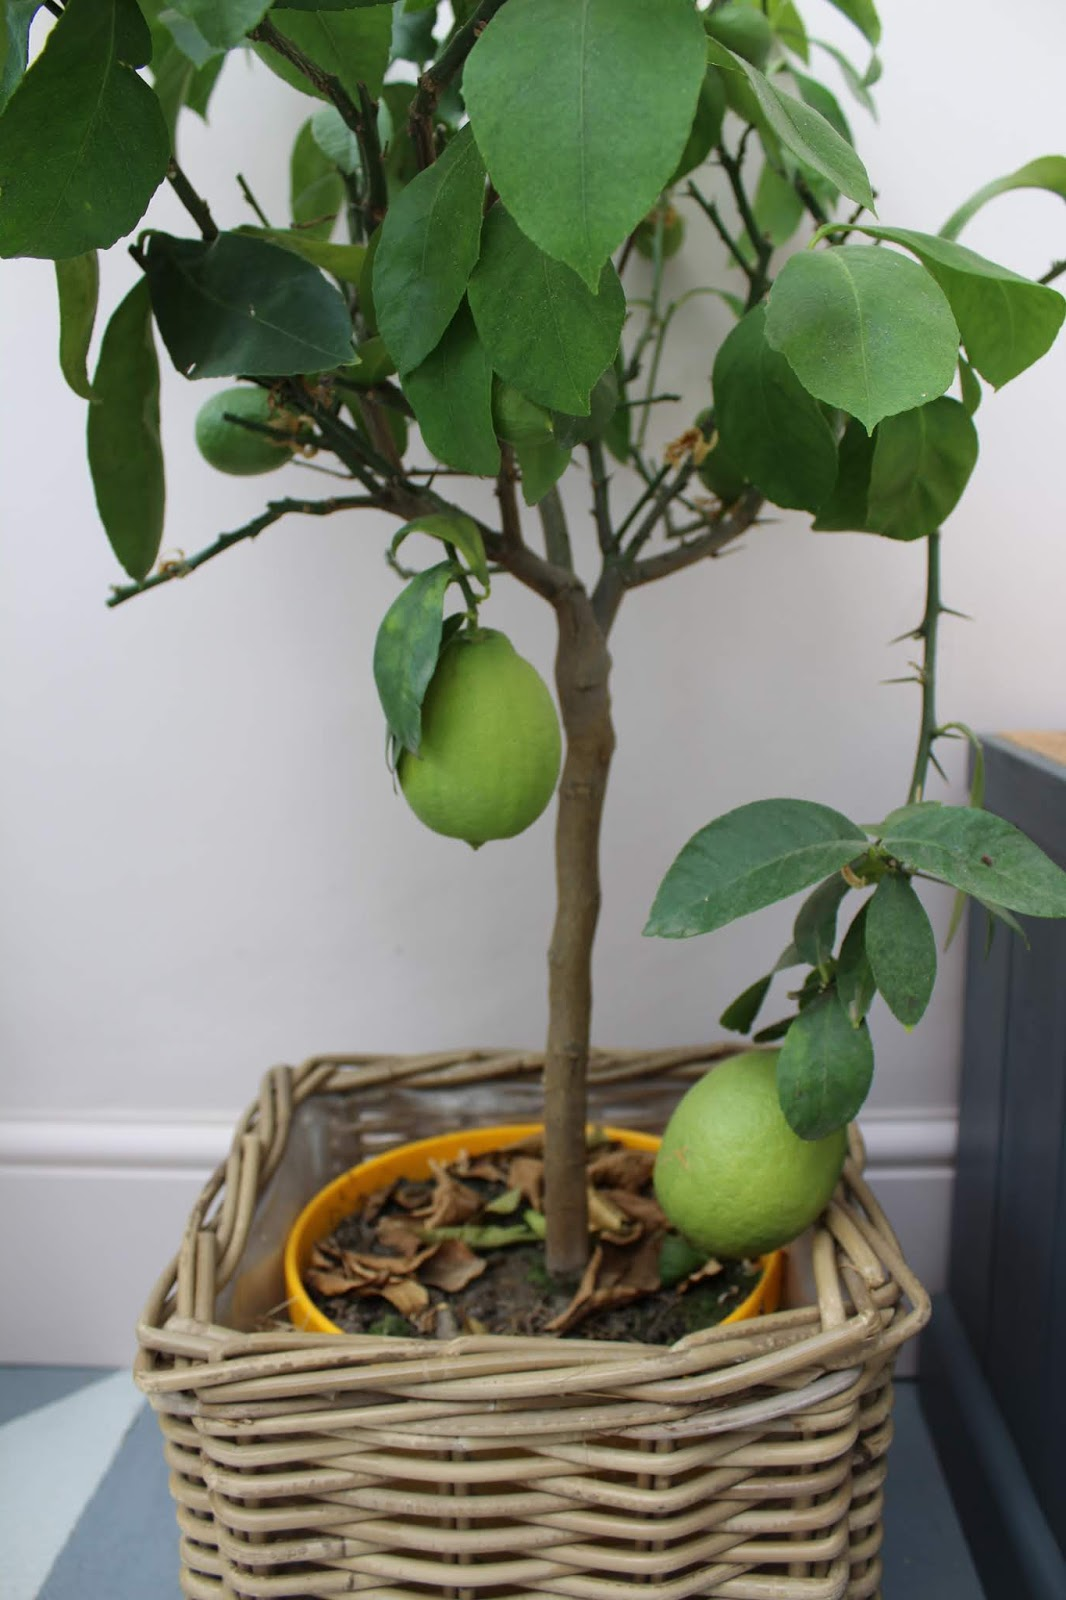 Growing lemons in a conservatory